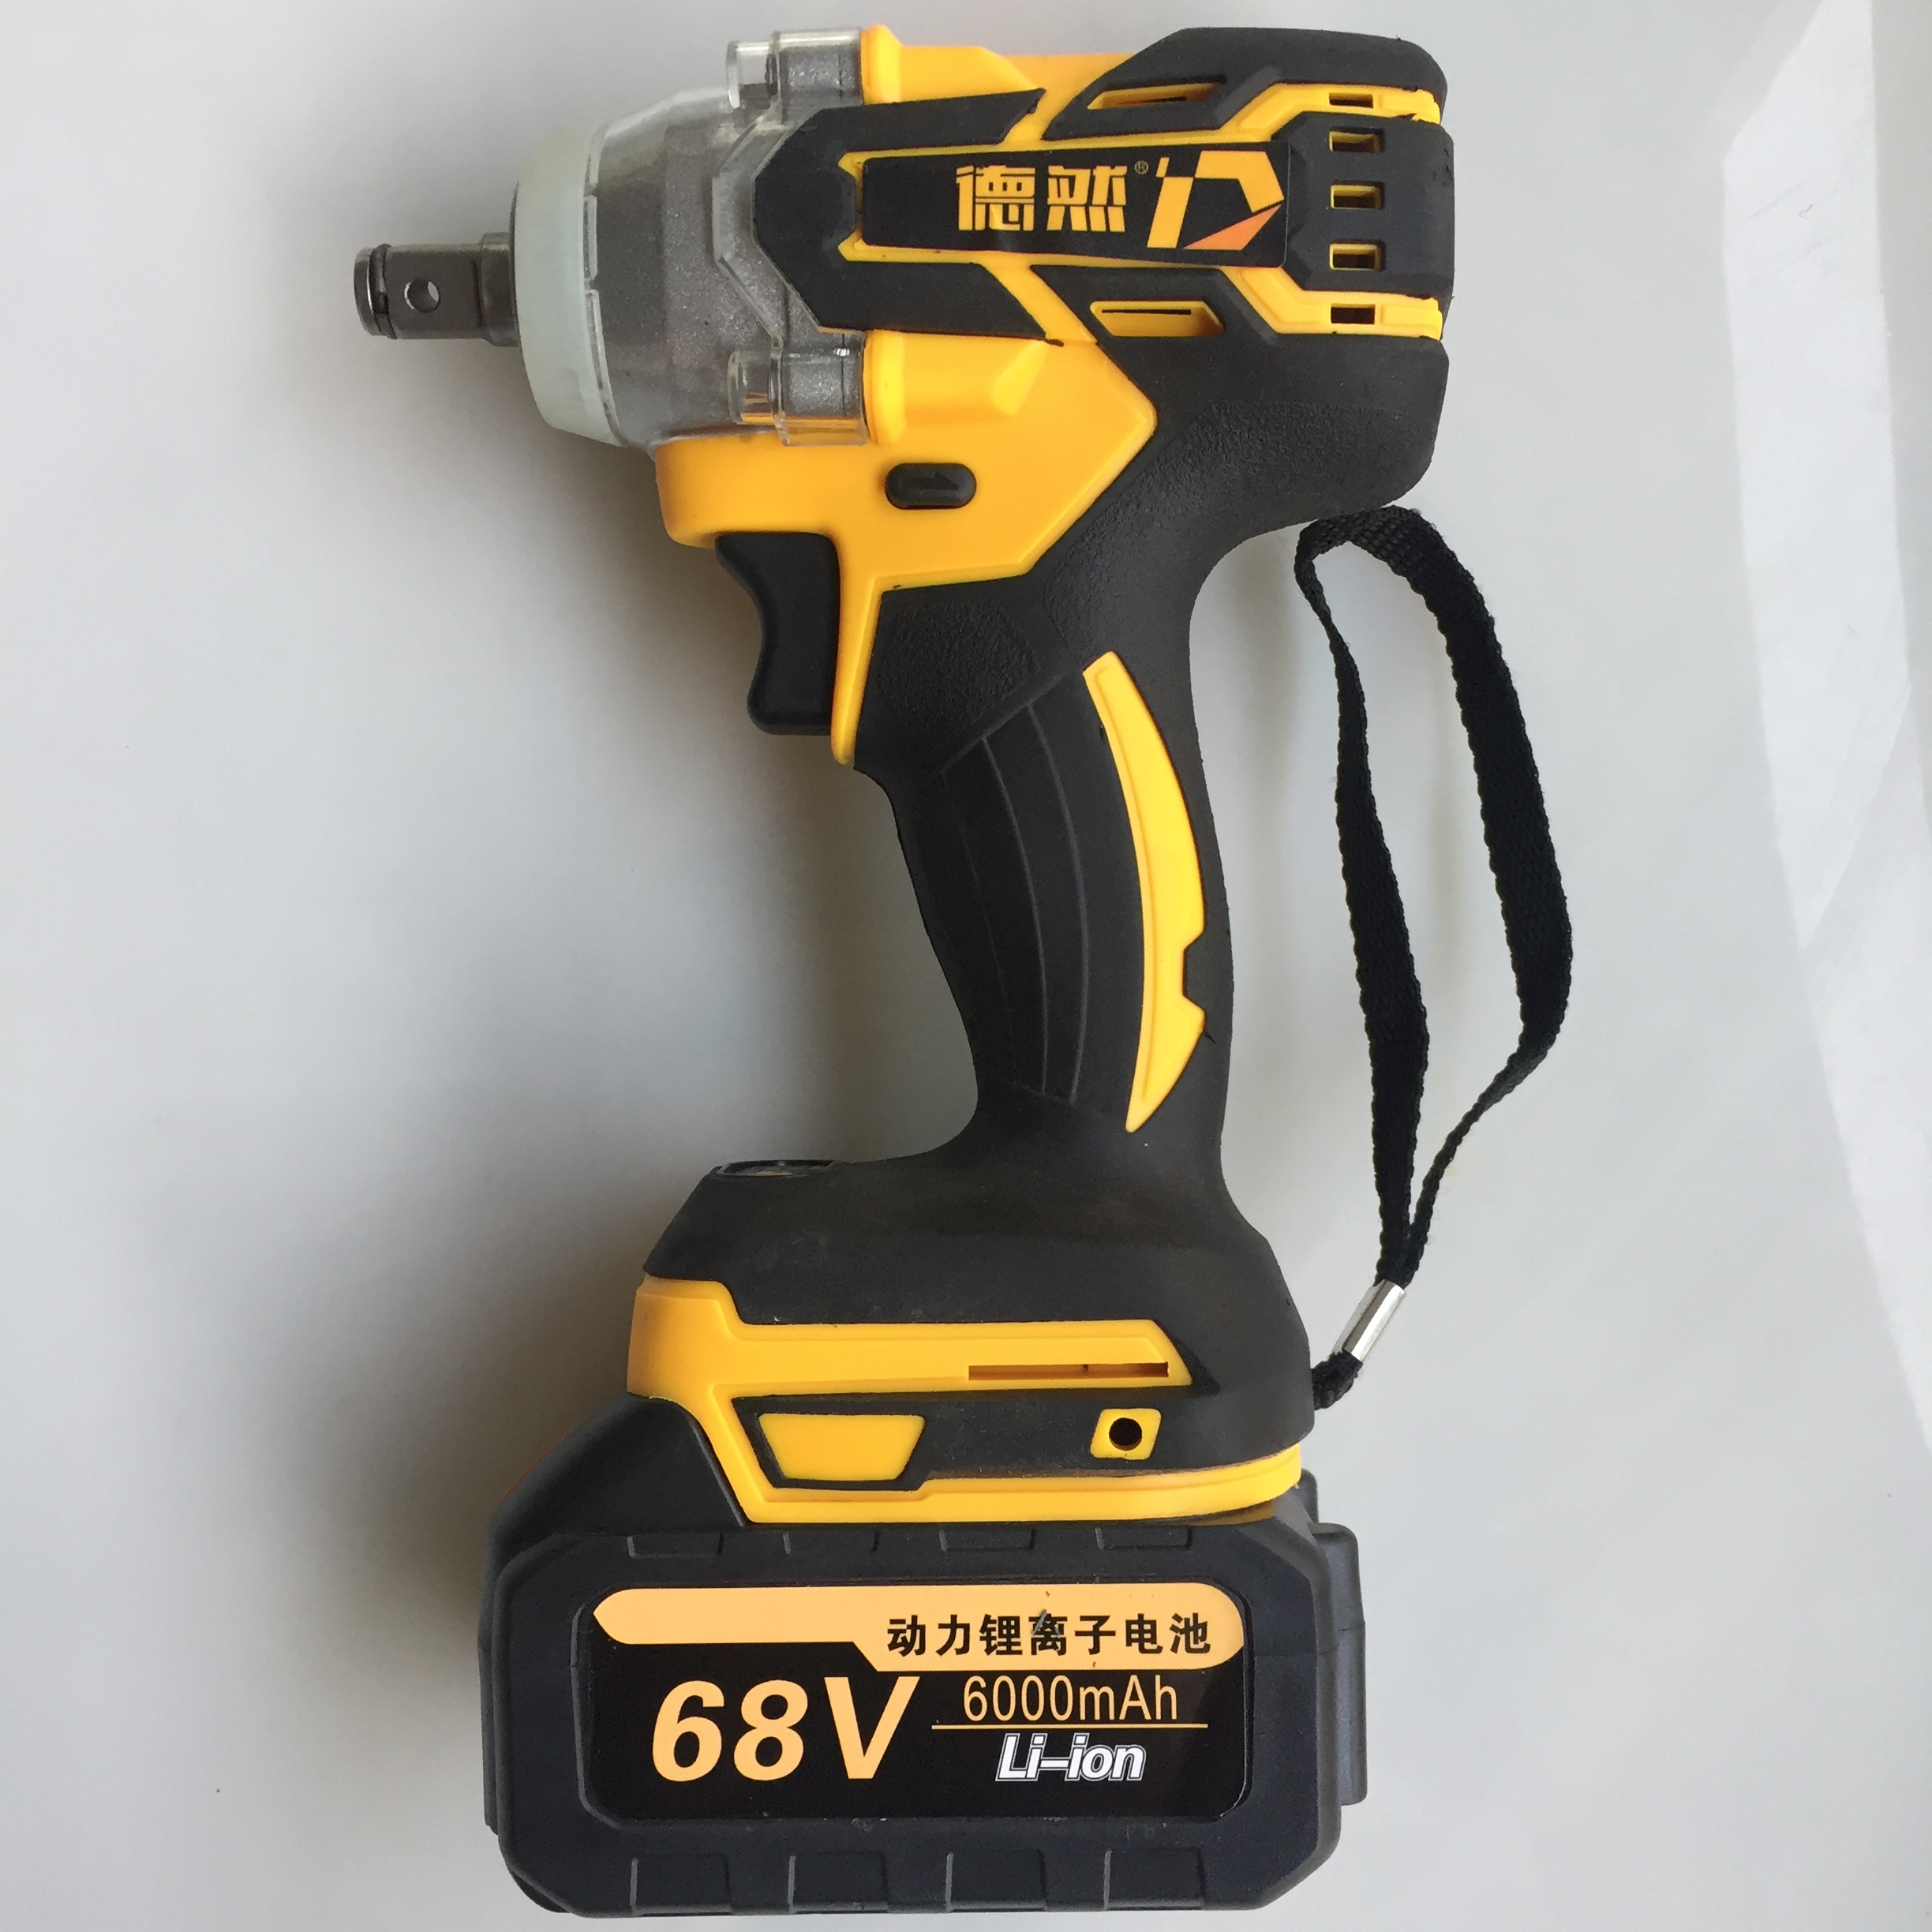 Brushless Cordless Electric Wrench Impact Socket Wrench 6000mAh Li Battery Hand Drill Installation Power Tools With LED